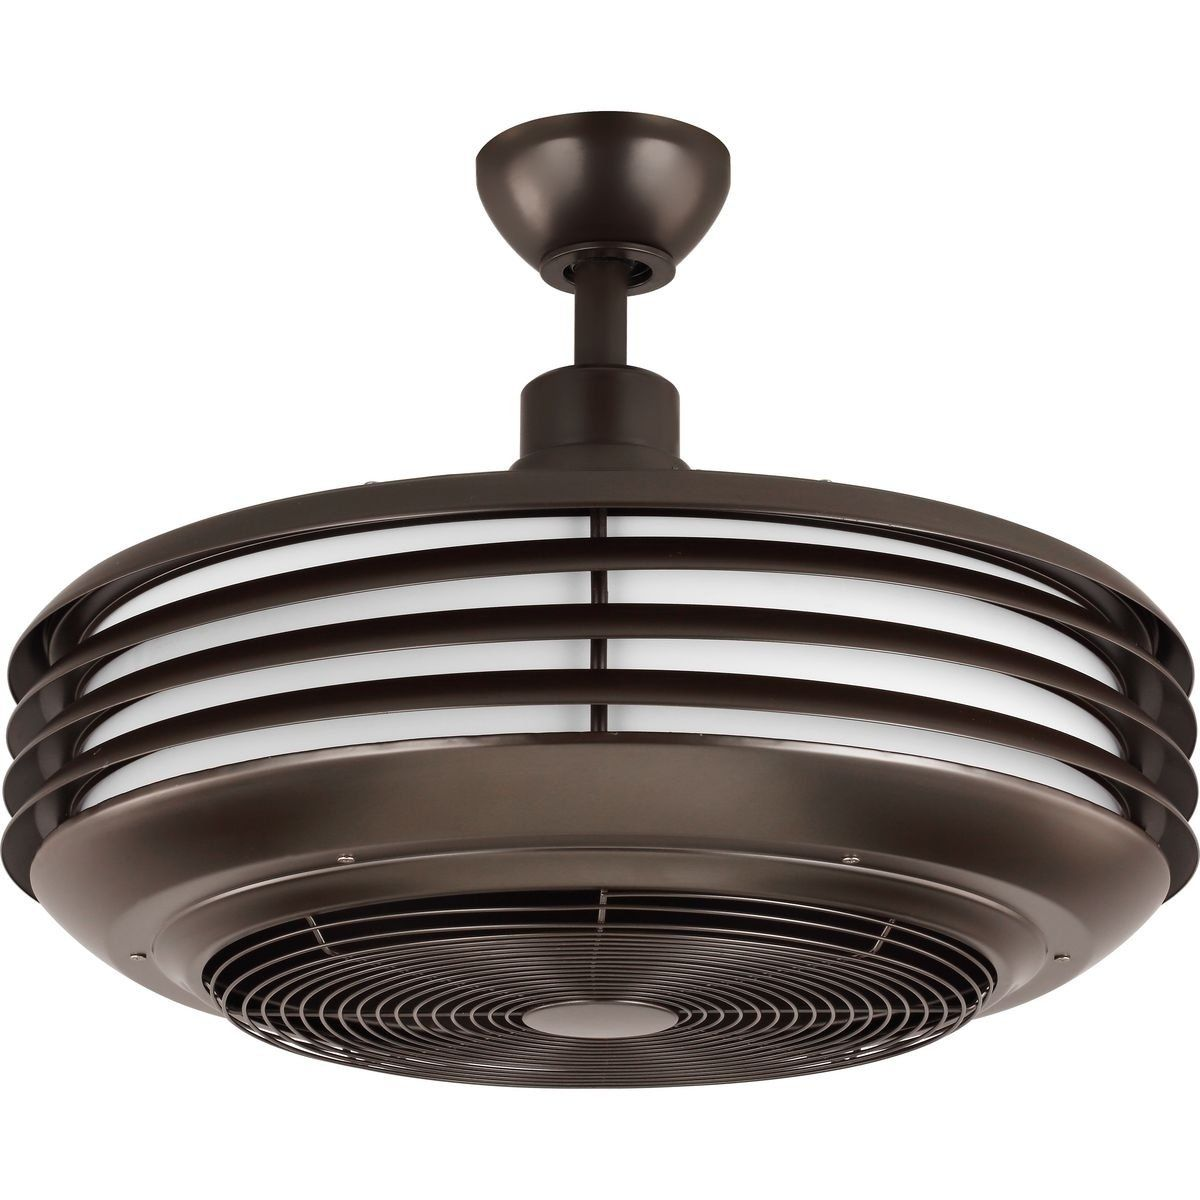 Sanford 24 Enclosed Indoor Outdoor Ceiling Fan With Led Light